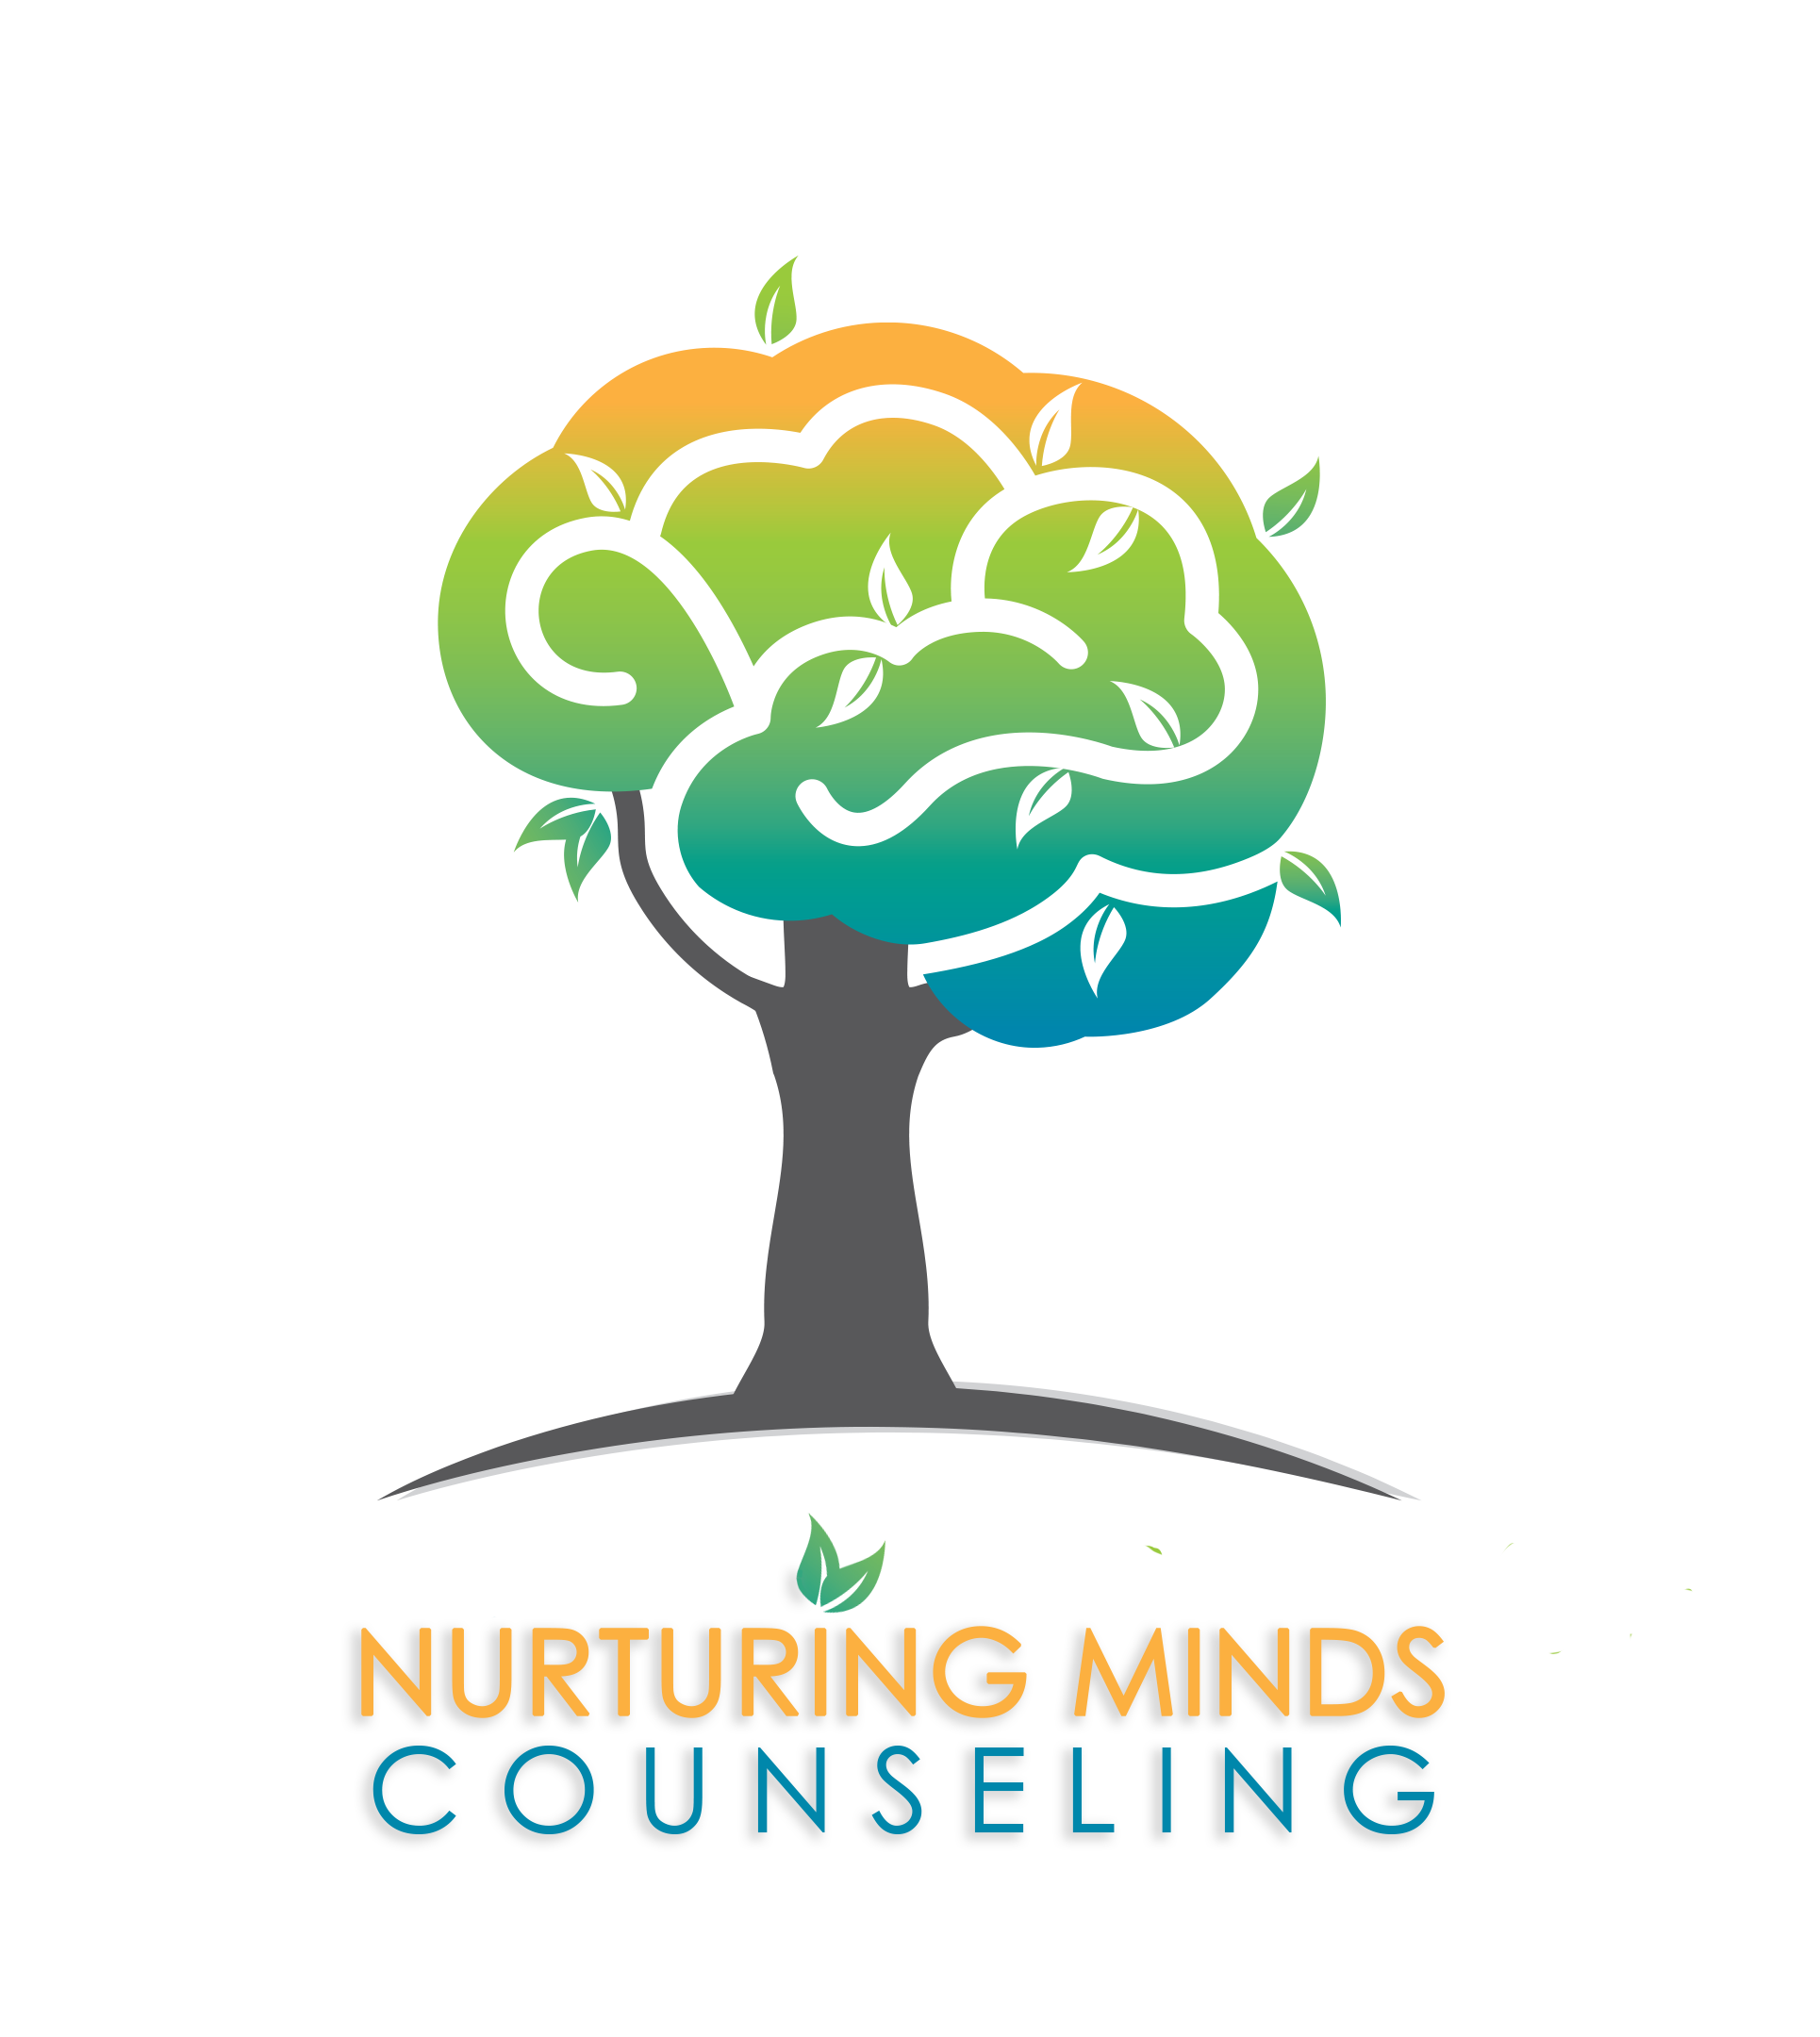 Counseling clipart psychological counseling. My home nurturing minds